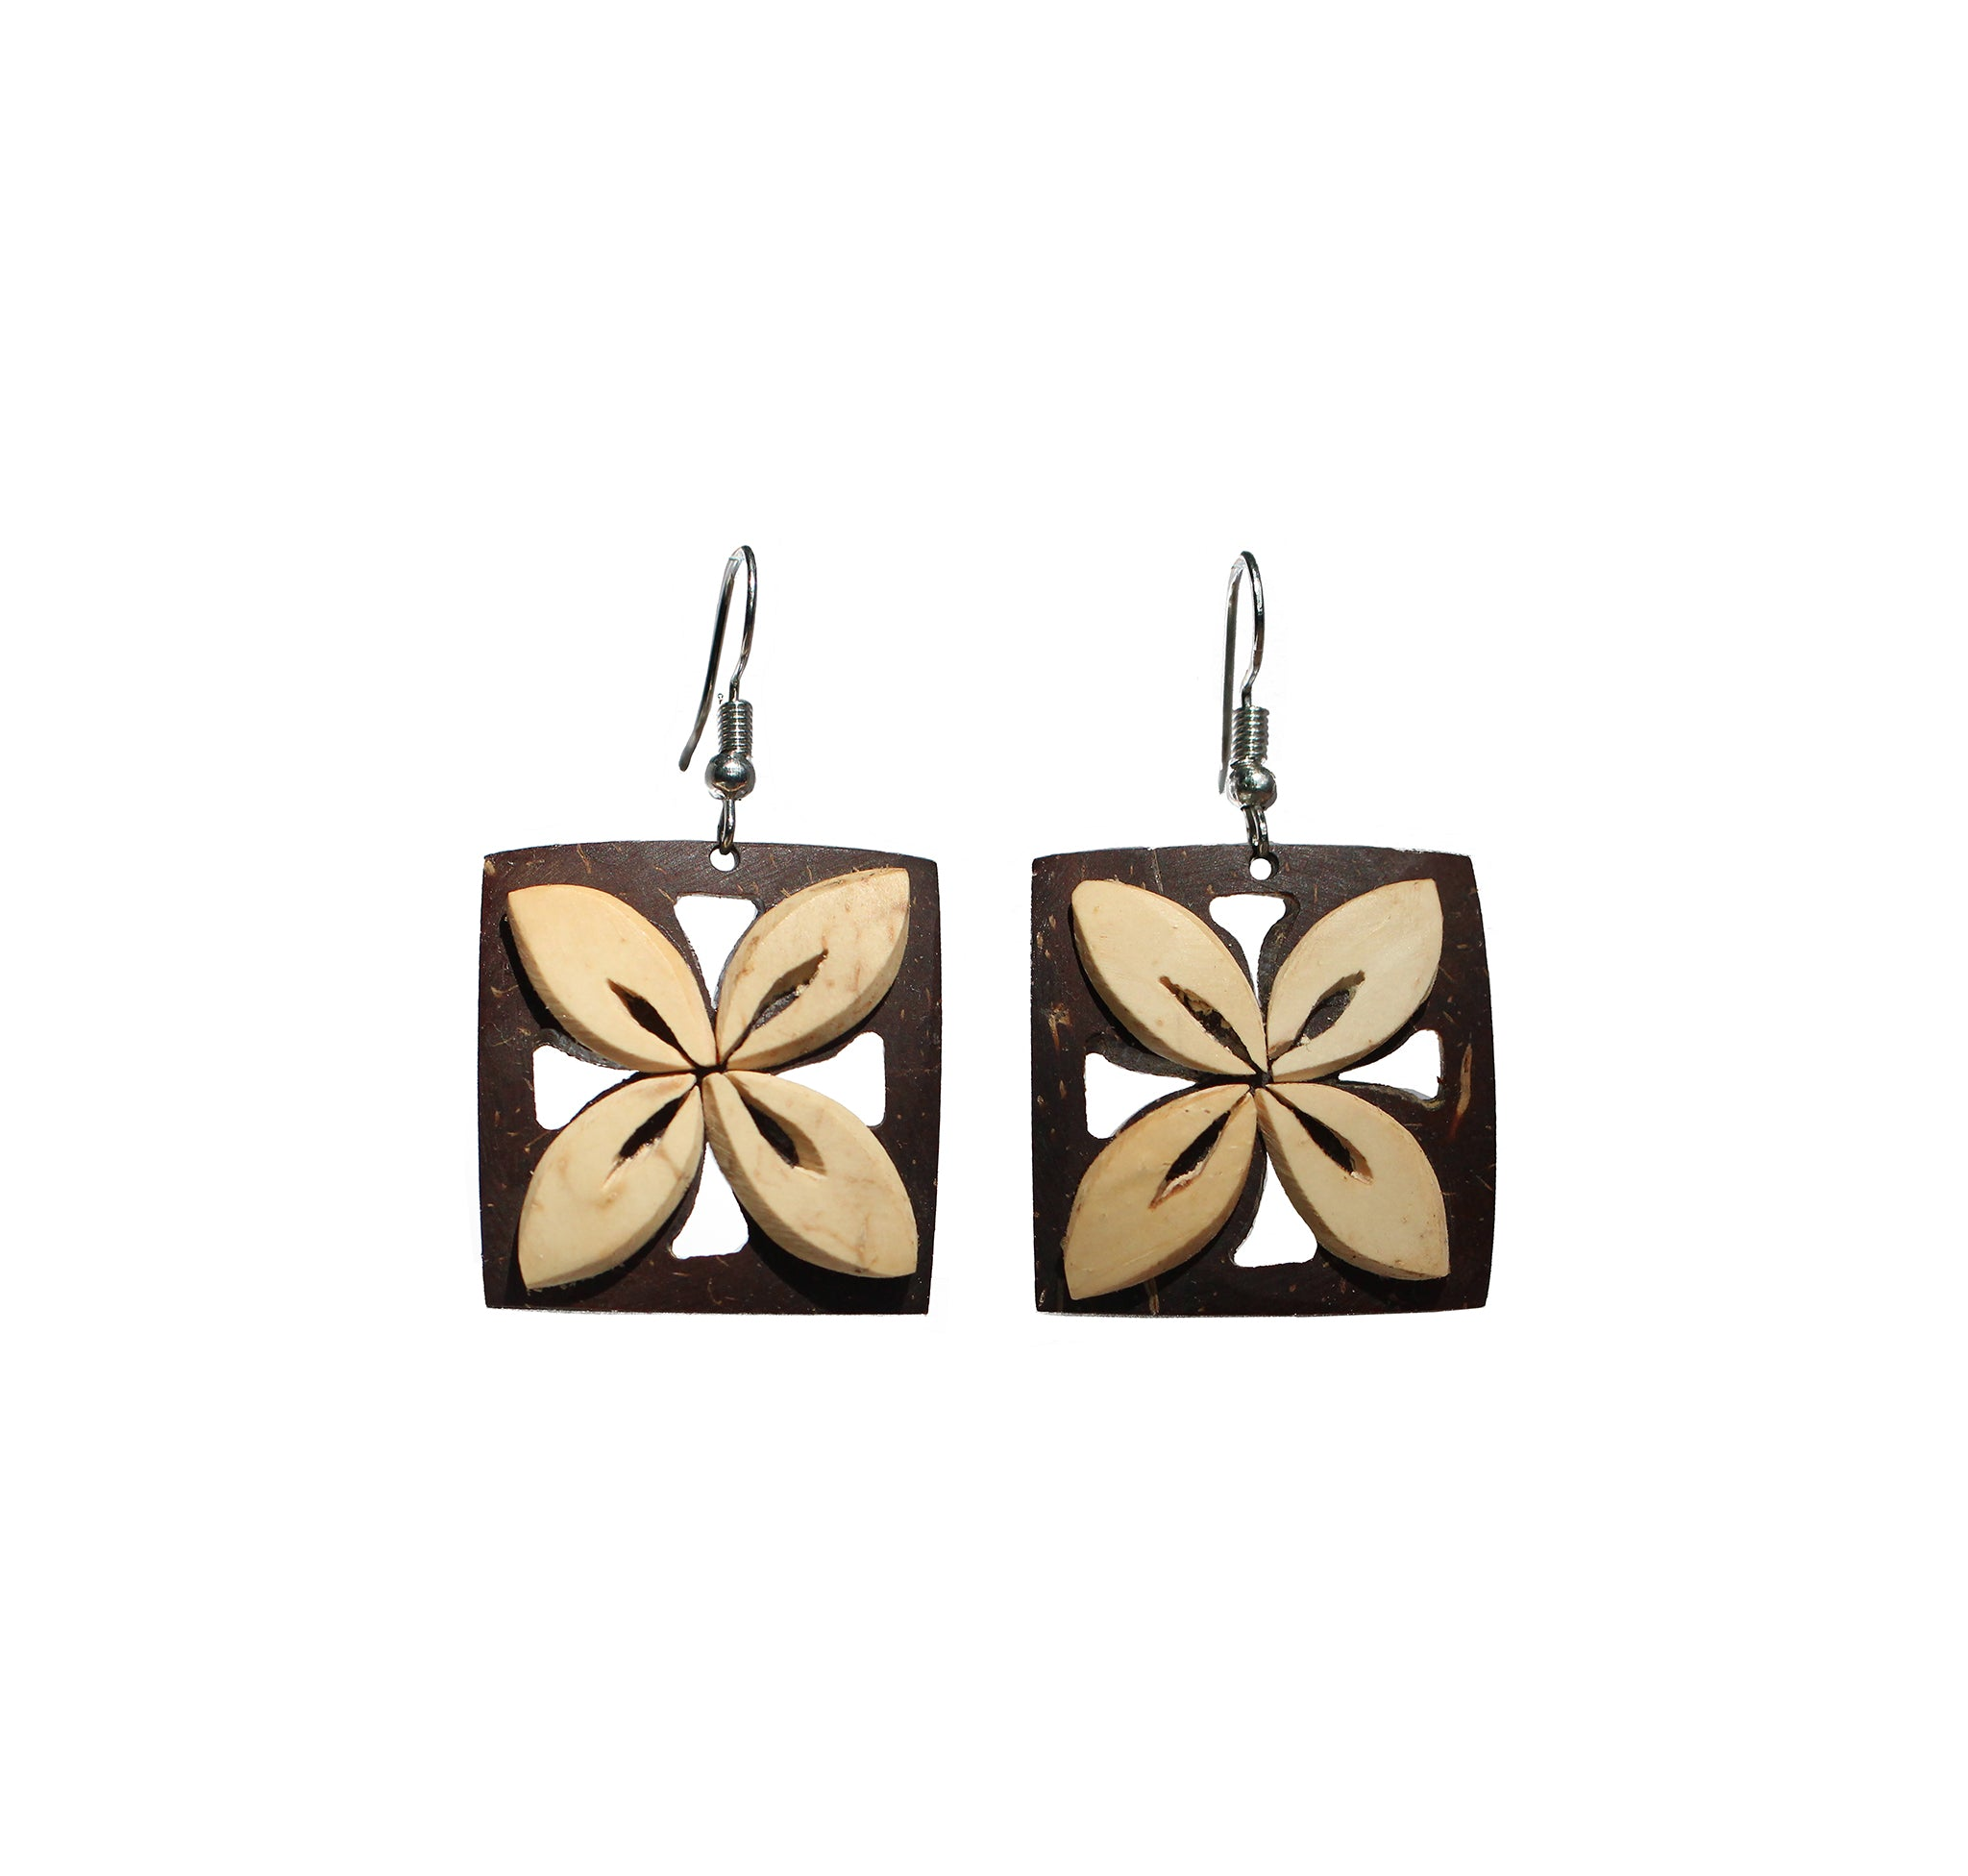 Coconut Earrings - Square Tapa